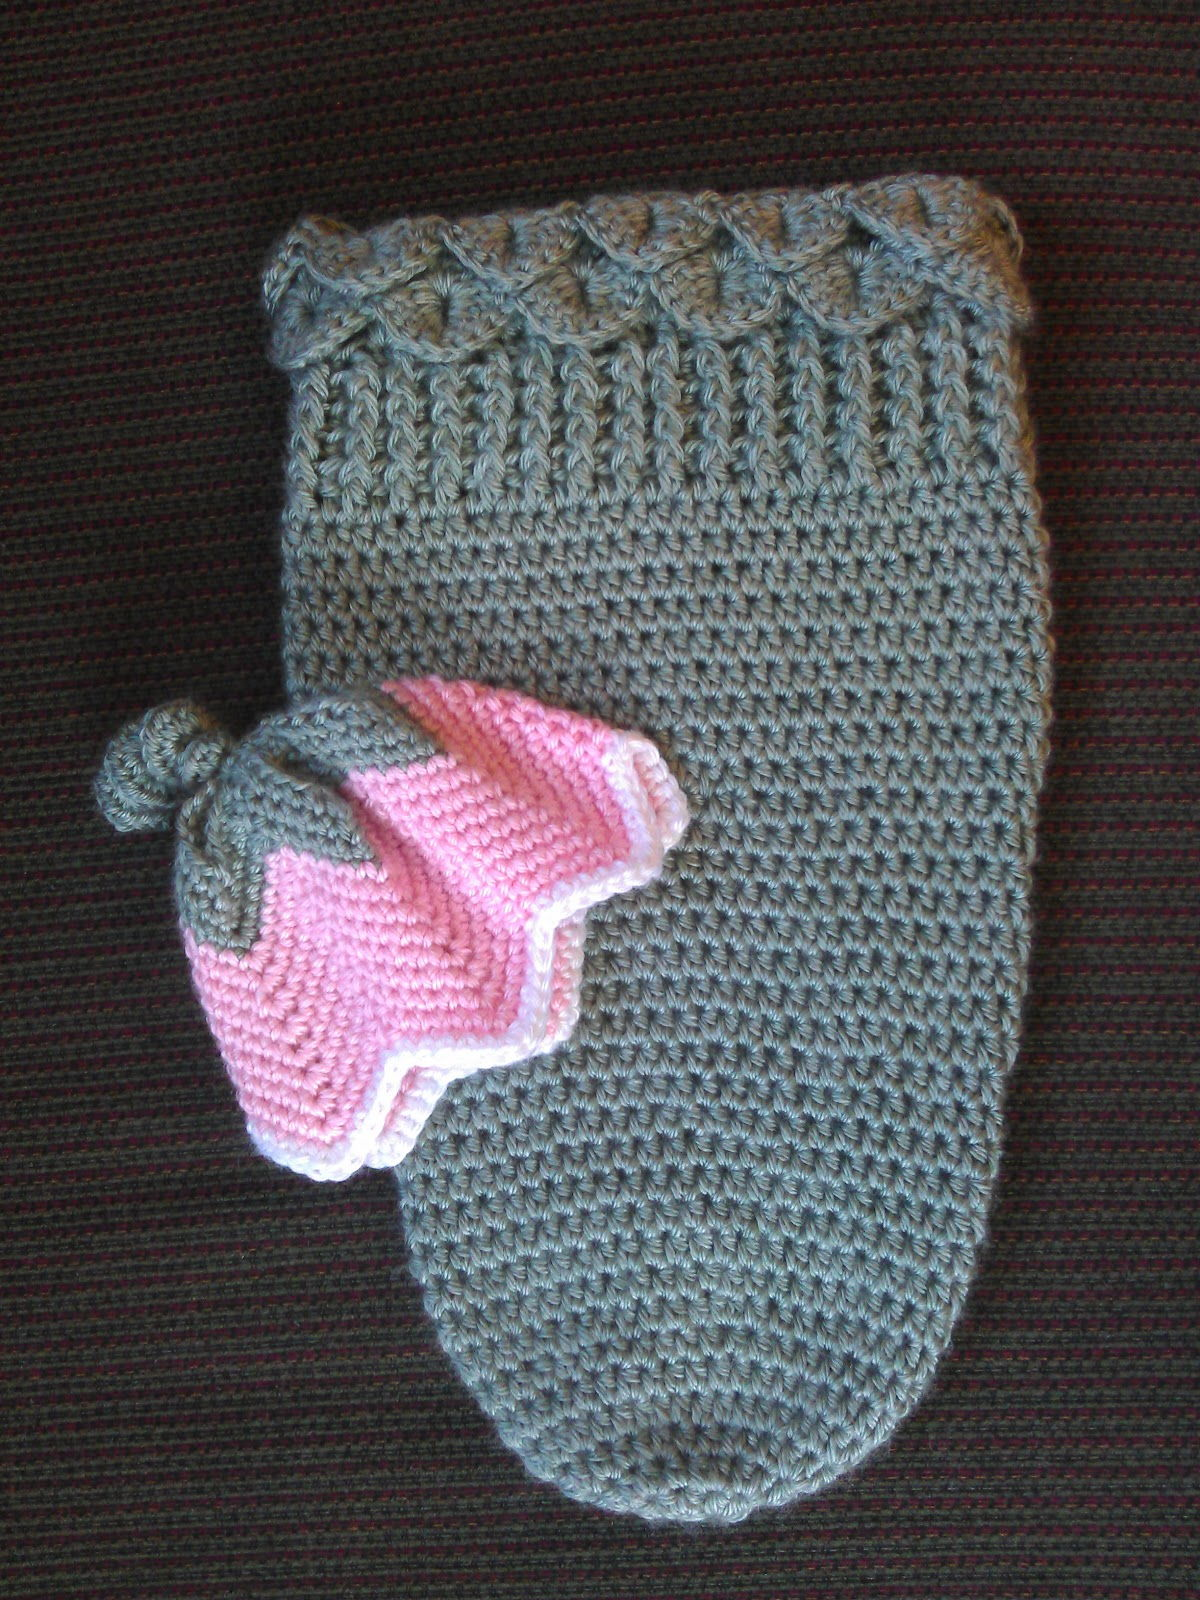 Free Knitted Baby Cocoon Pattern : 35+ Adorable Crochet and Knitted Baby Cocoon Patterns iCreativeIdeas.com - ...